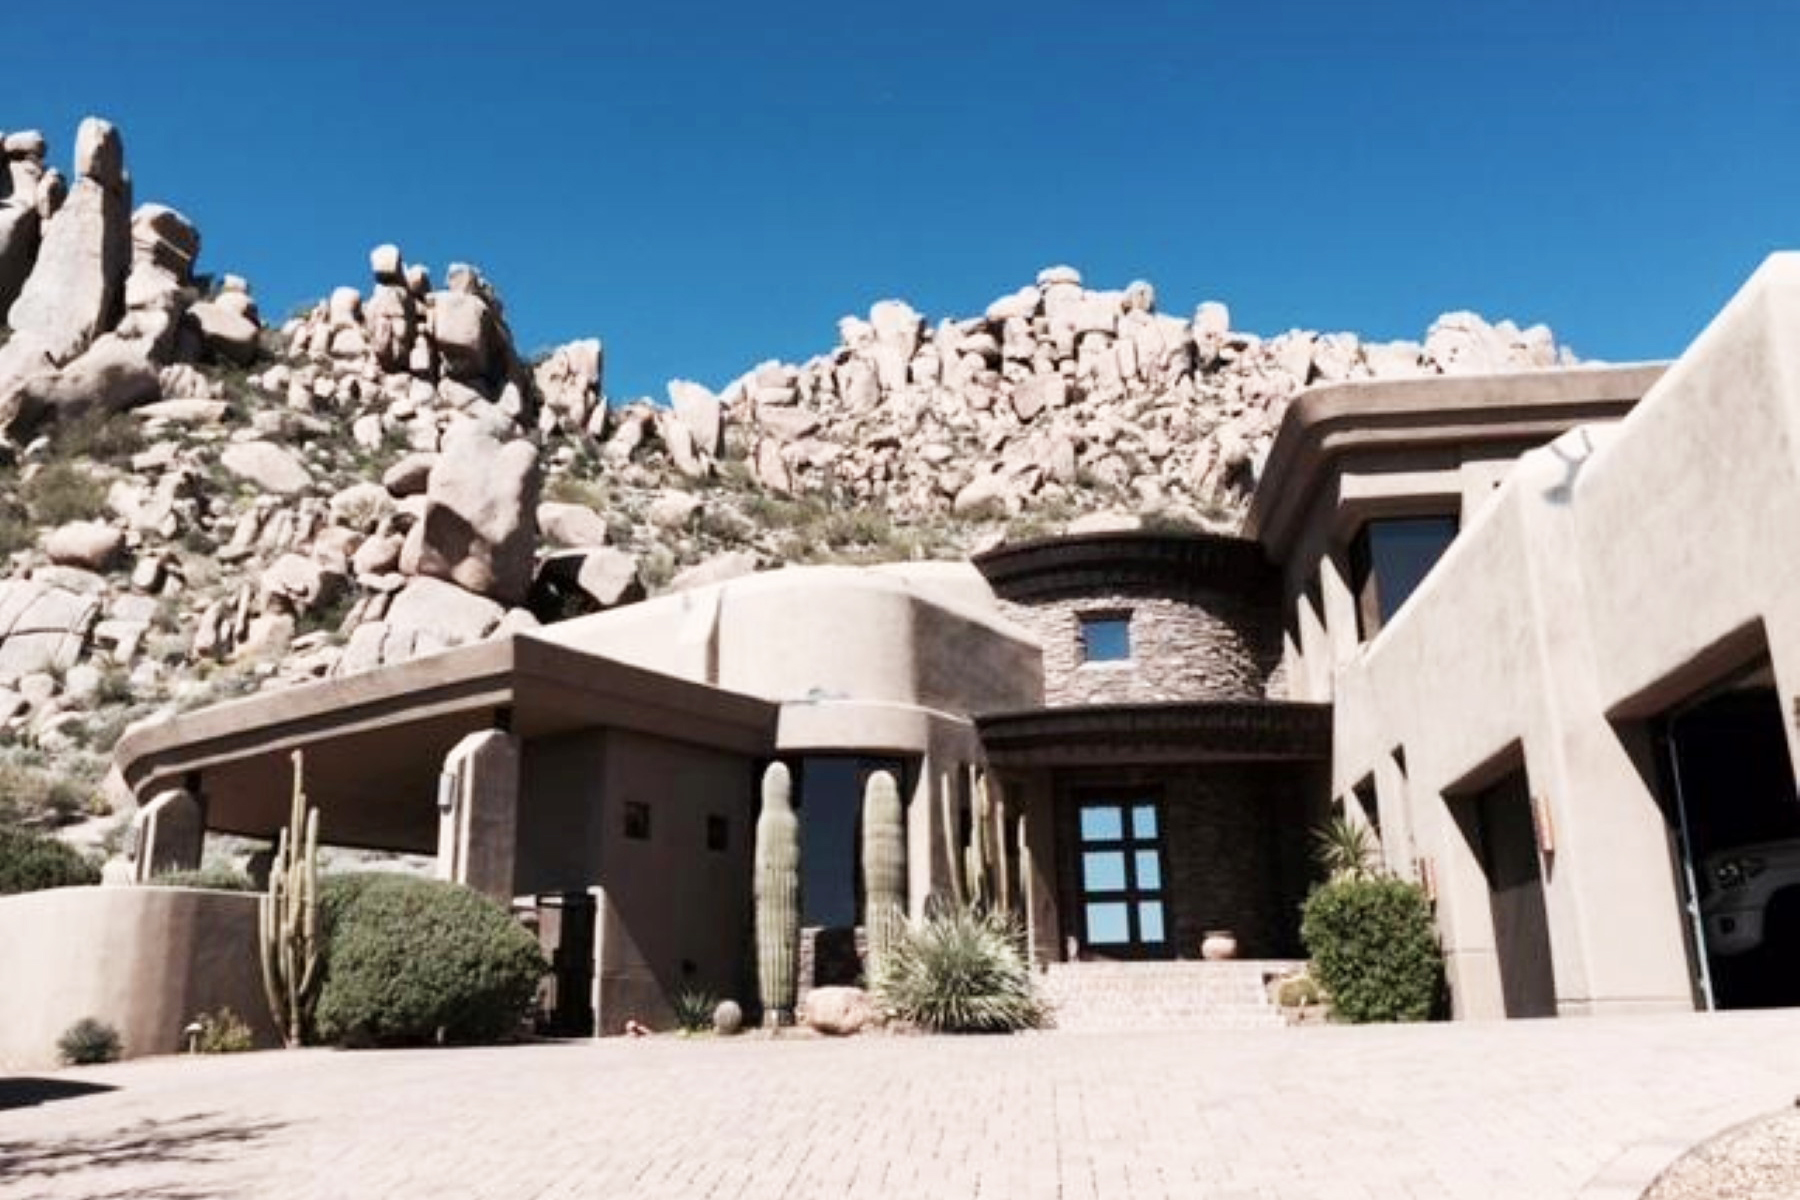 Single Family Home for Sale at Soft Custom Contemporary On One Of The Highest Elevation Lots On Troon Mountain 25132 N 114th Street Scottsdale, Arizona 85255 United States